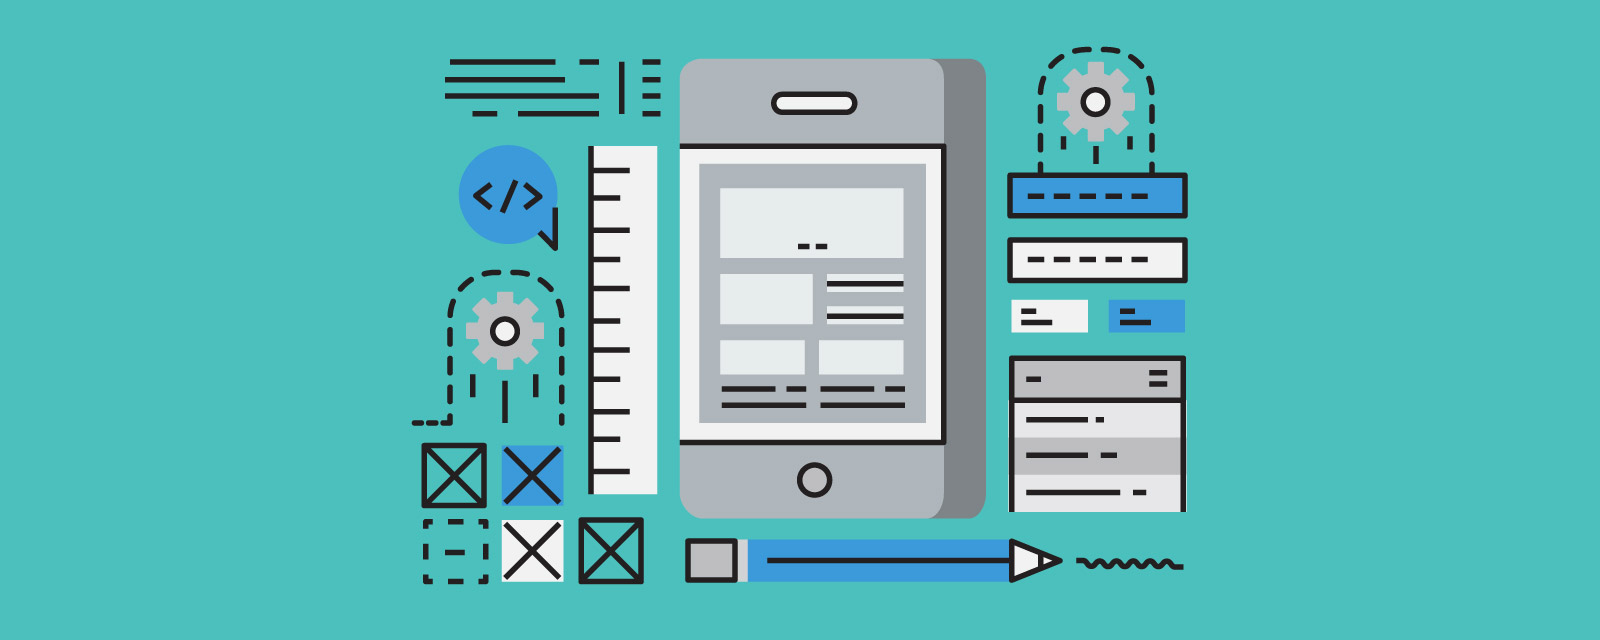 Mobile-First-design-web